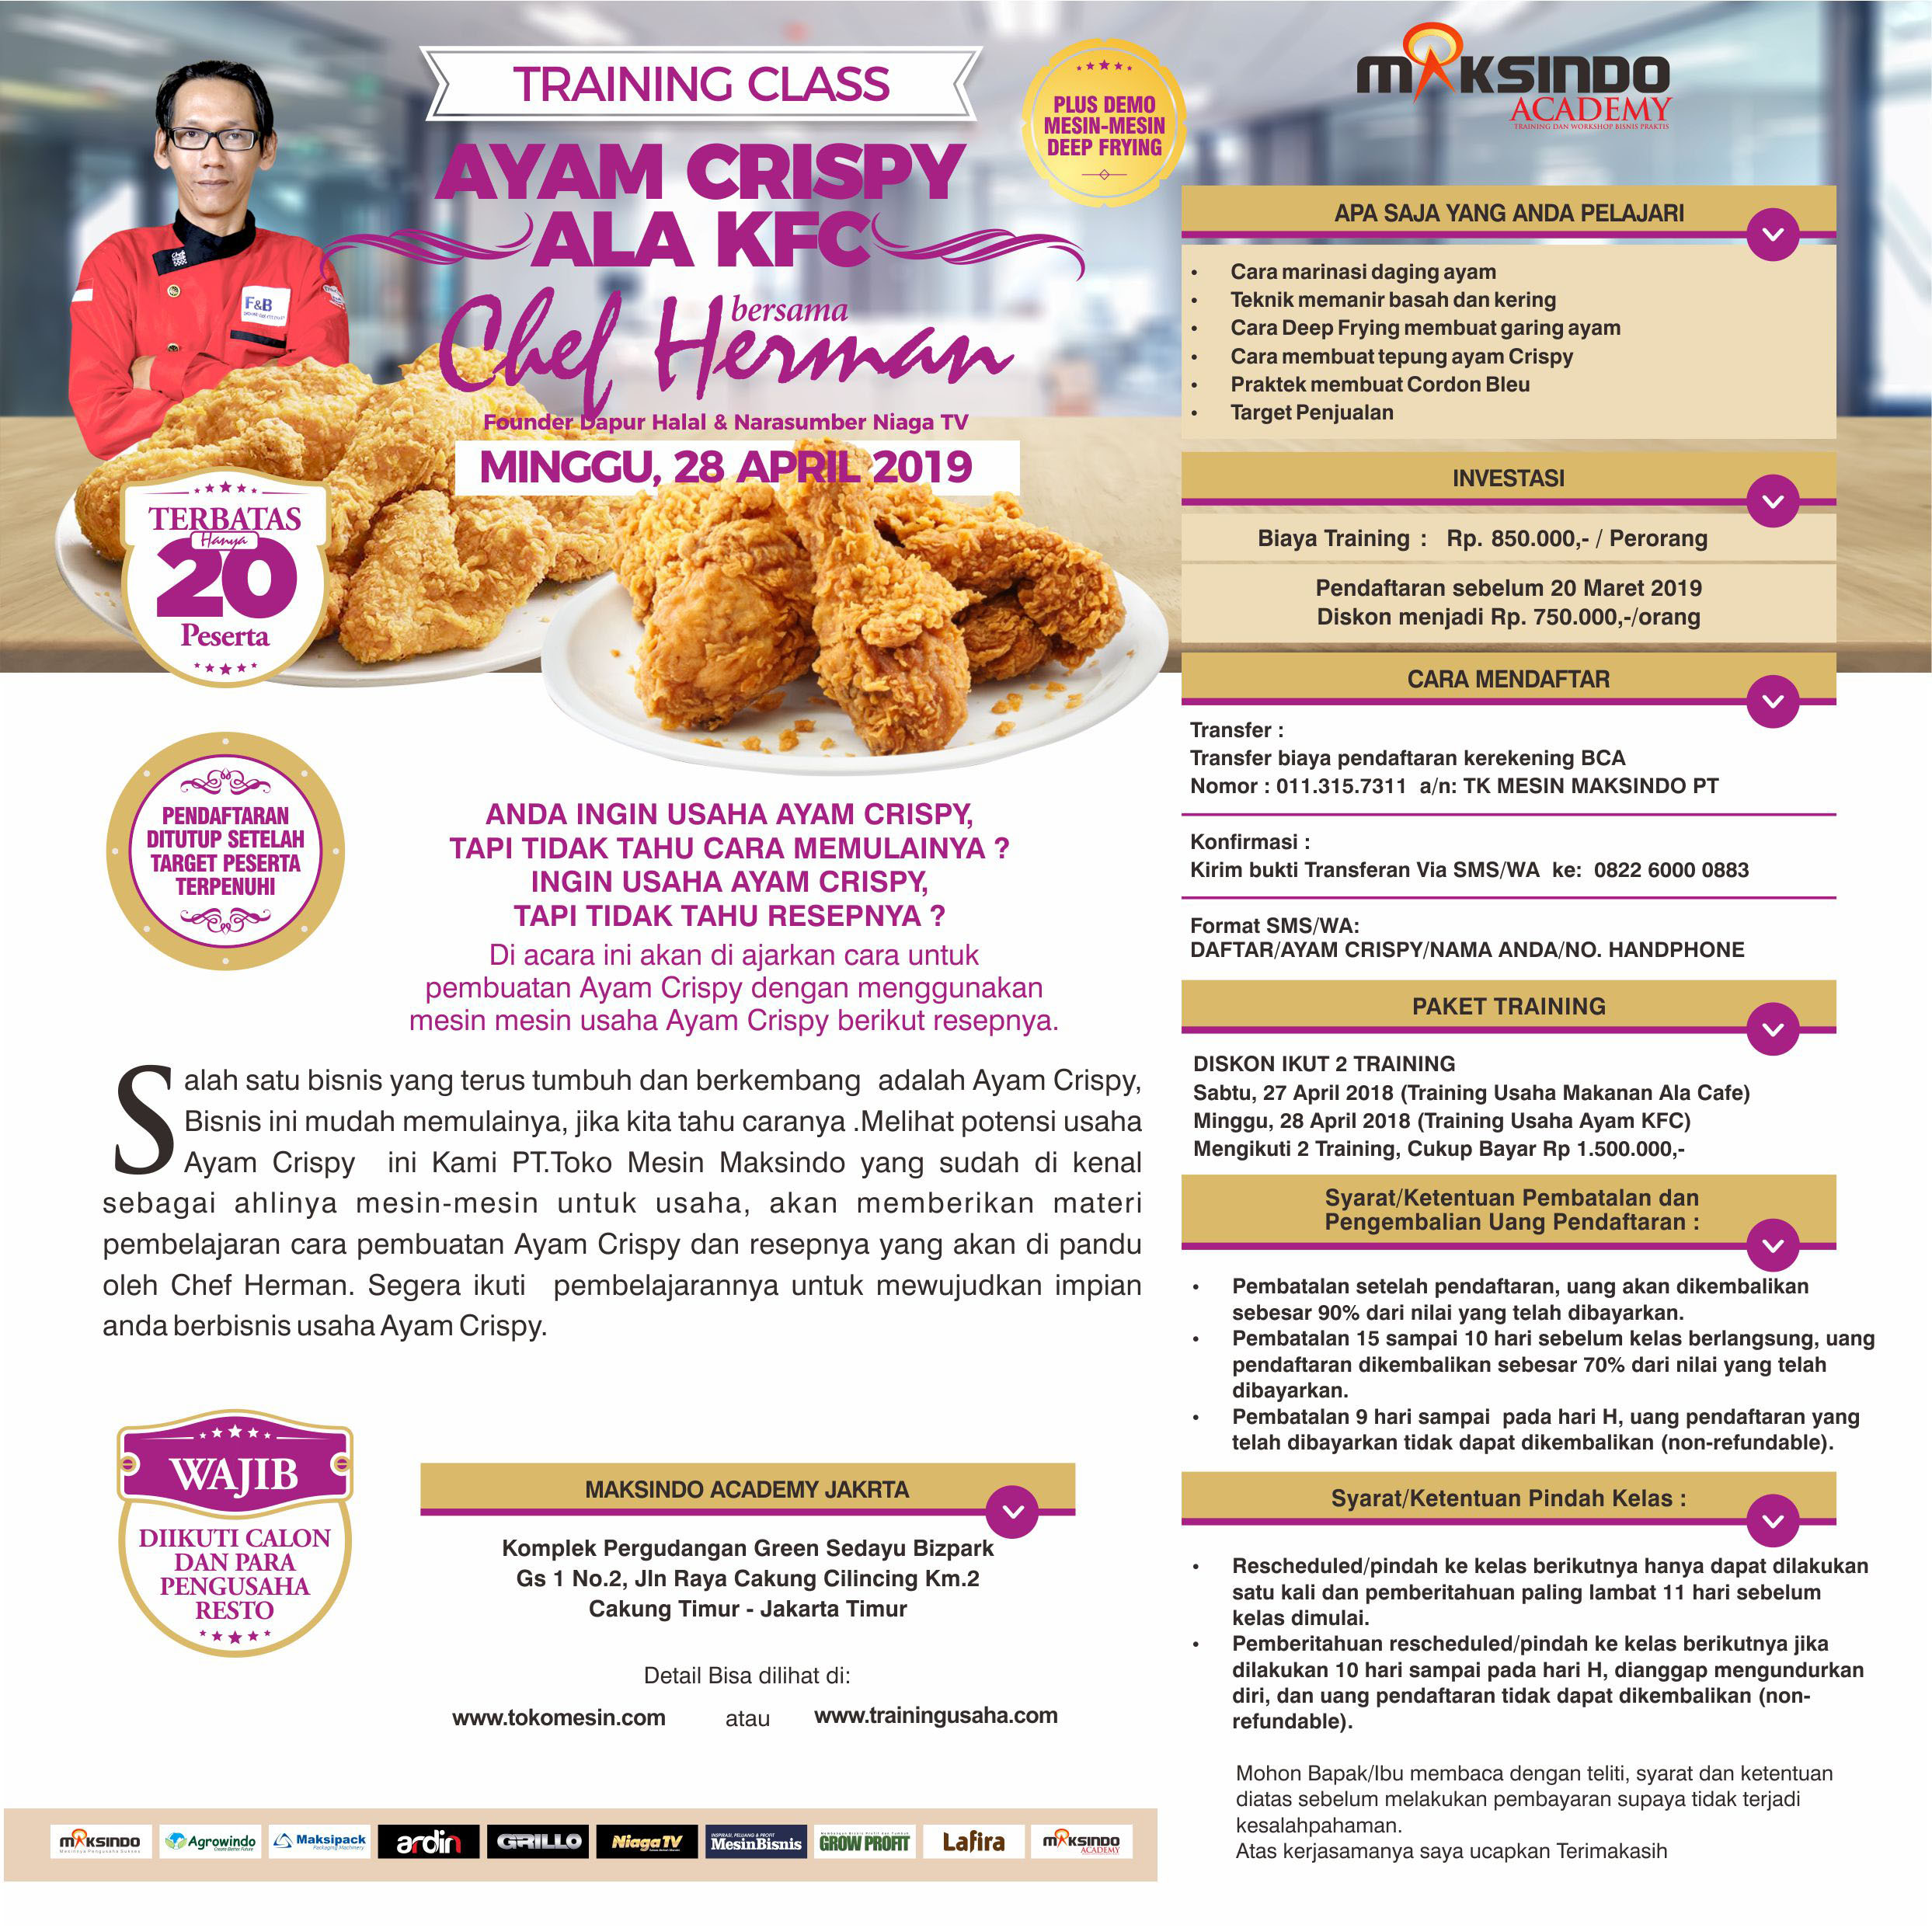 Brosur TRAINING CLASS AYAM CRISPY ALA KFC Minggu, 28 April 2019